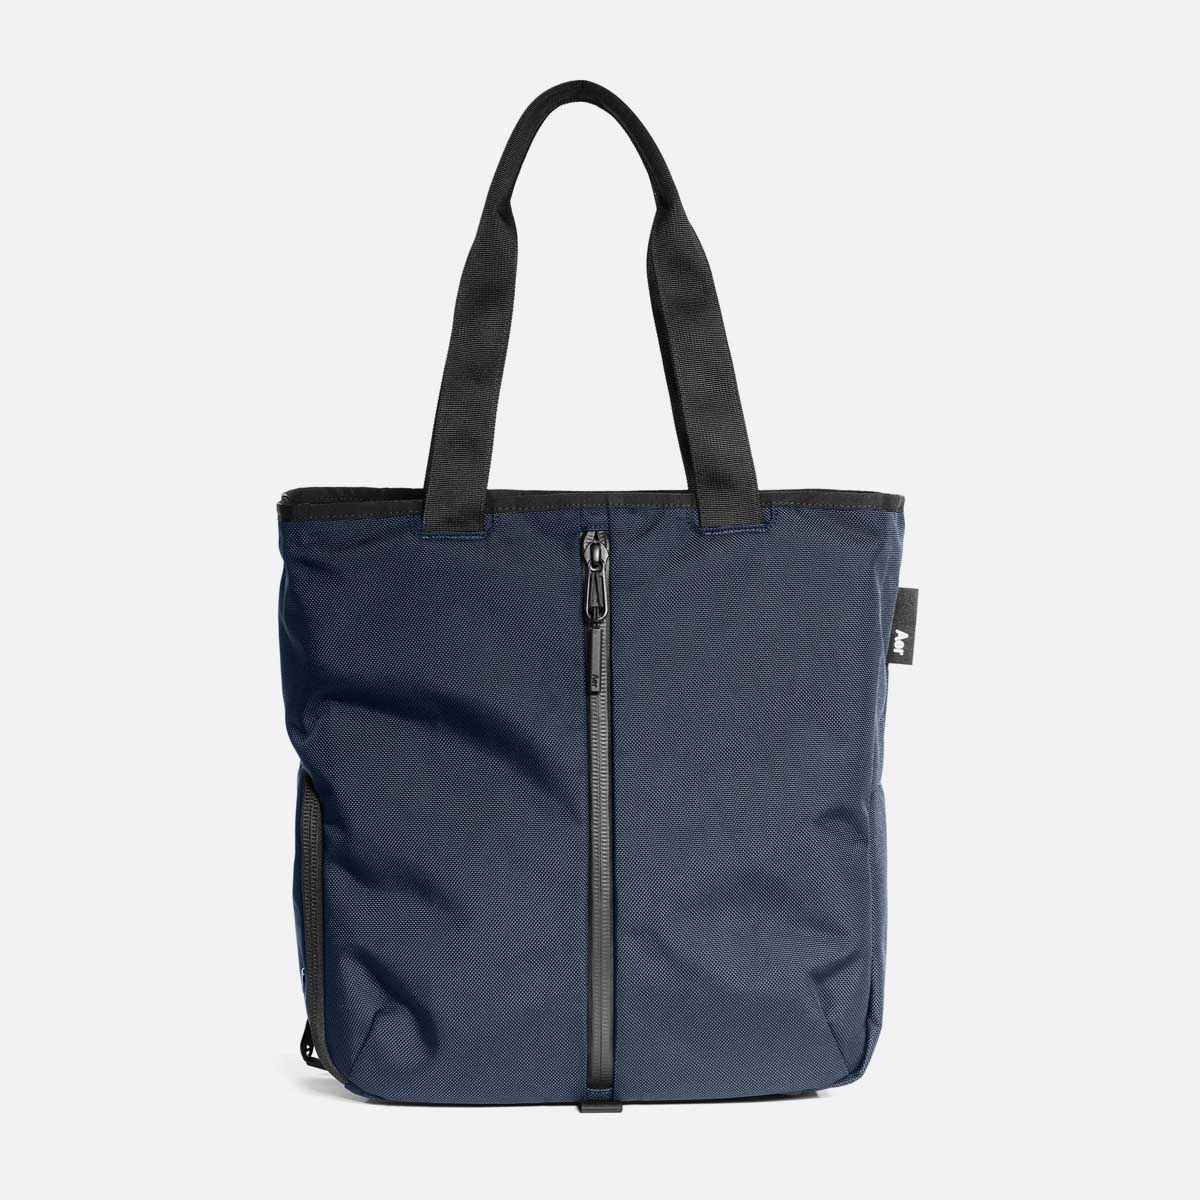 13008_gymtote_navy_front.jpg